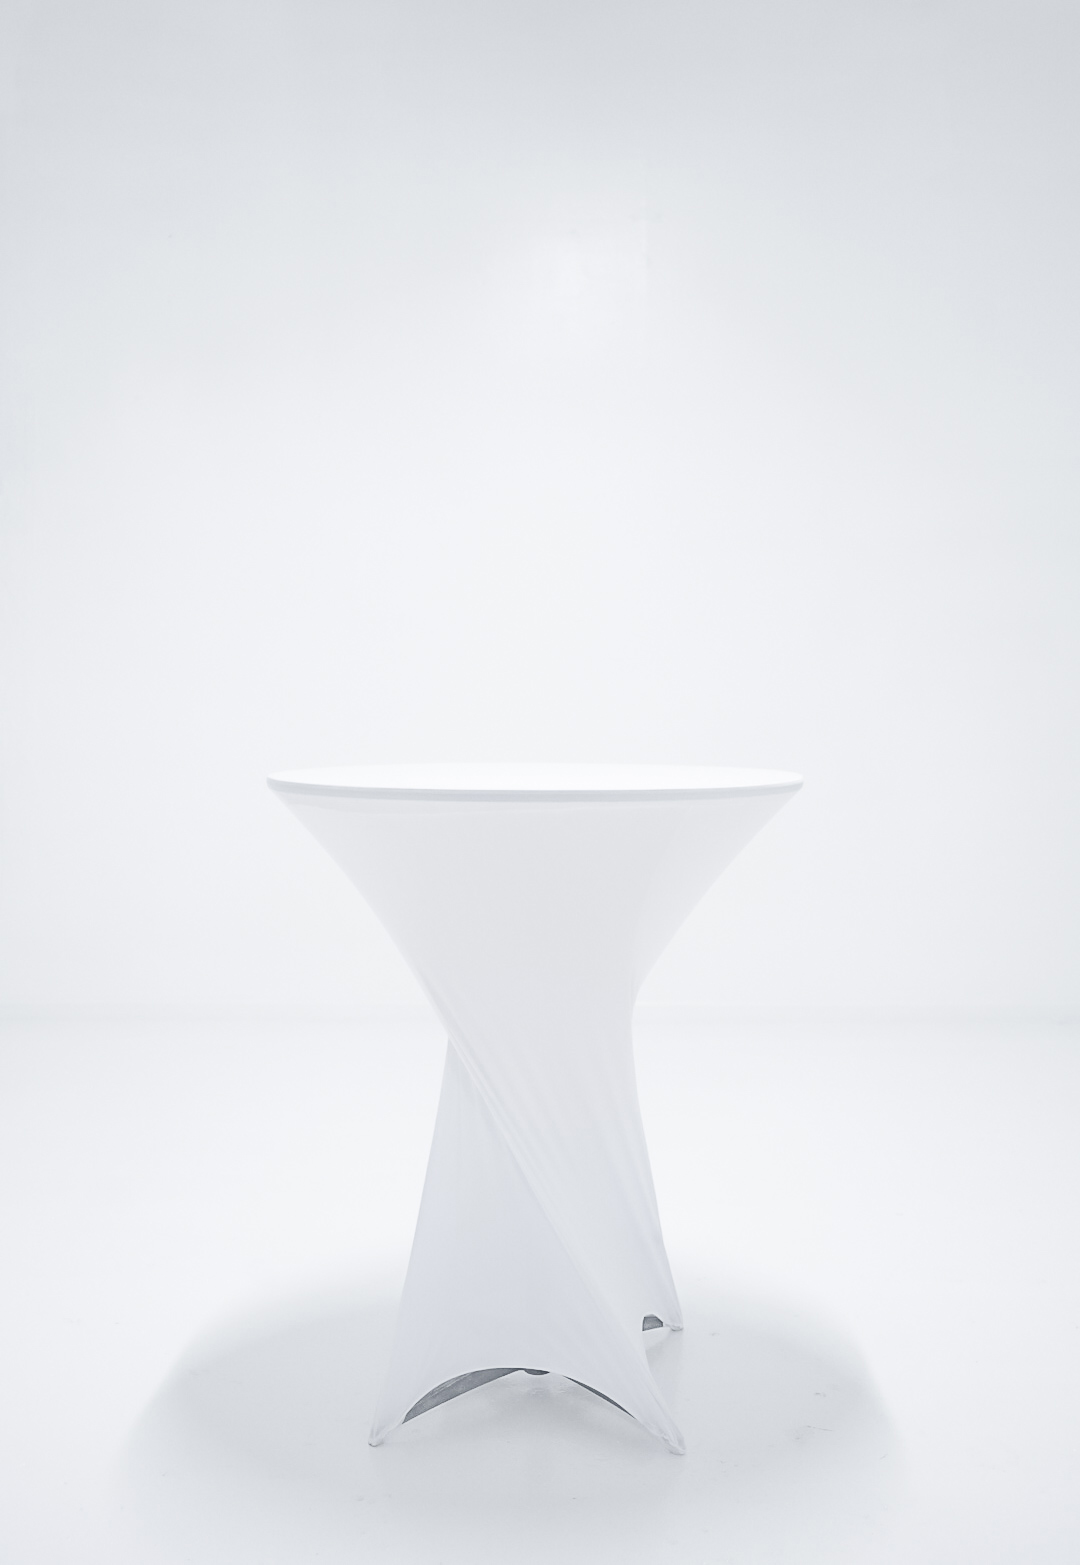 Cocktail Table with white cover - $15.00